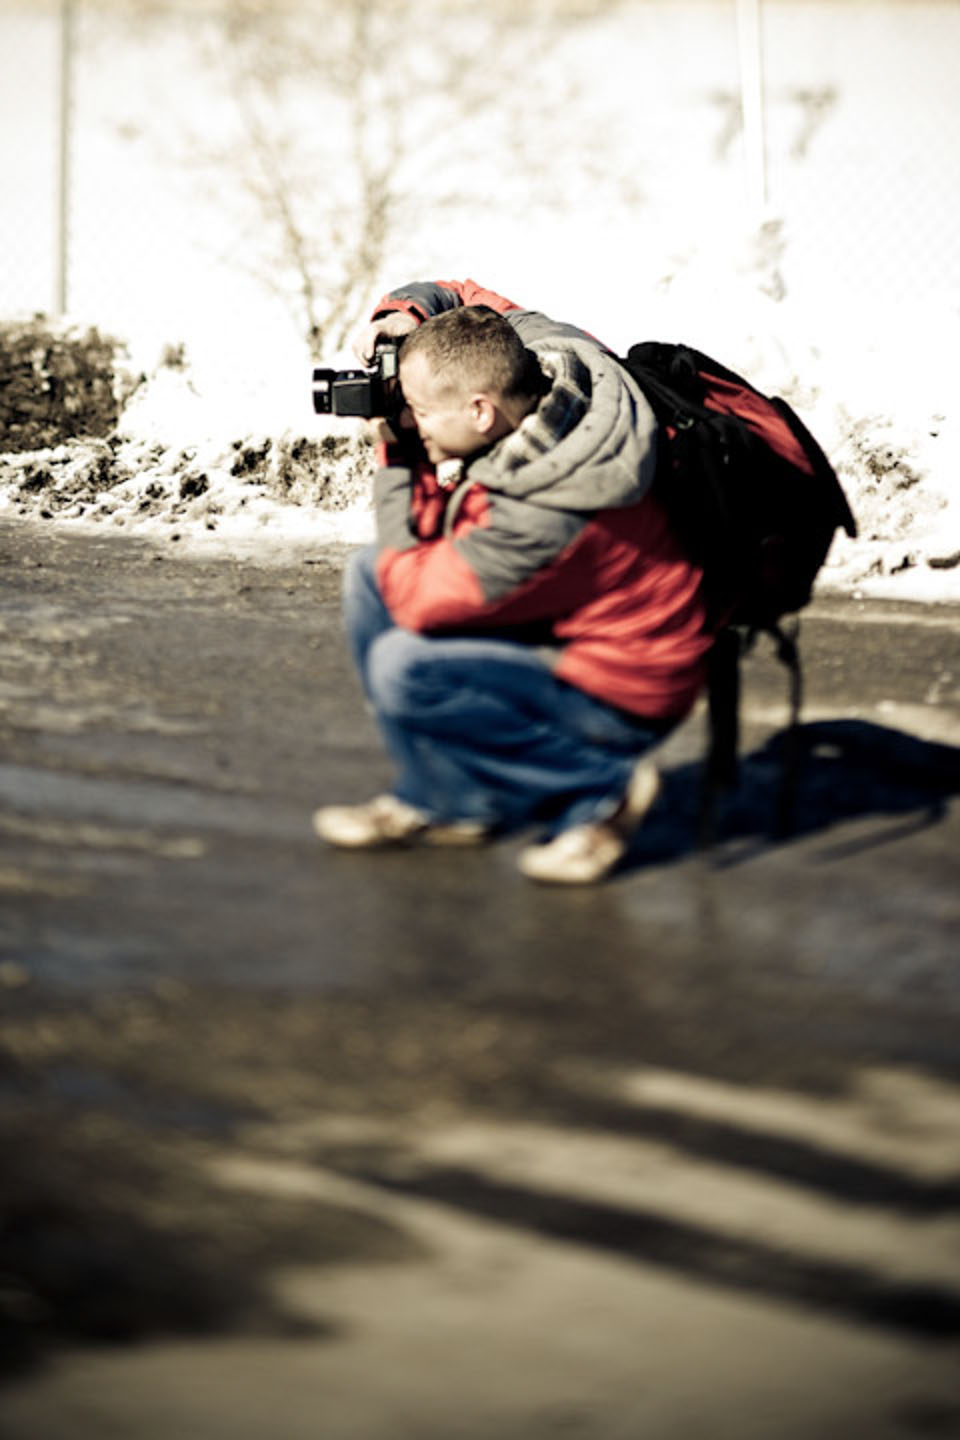 dav.d photographing in Lehi during a photo walk